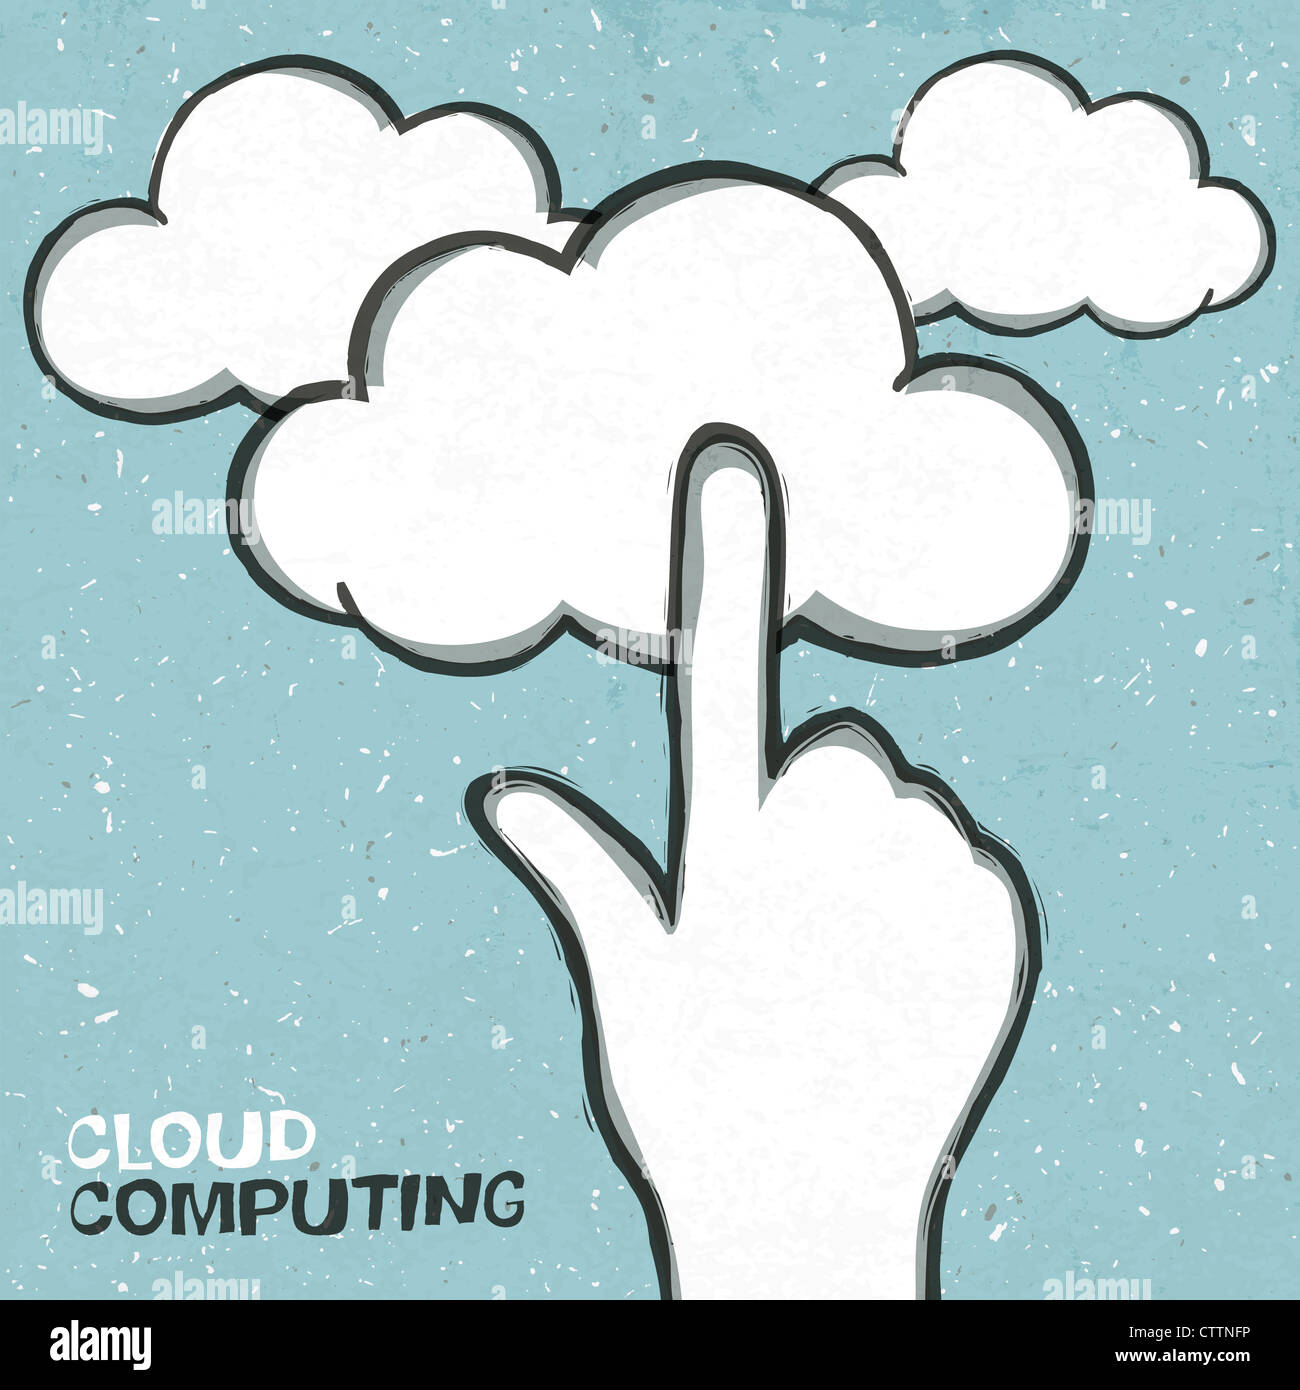 Cloud computing concept illustration Photo Stock